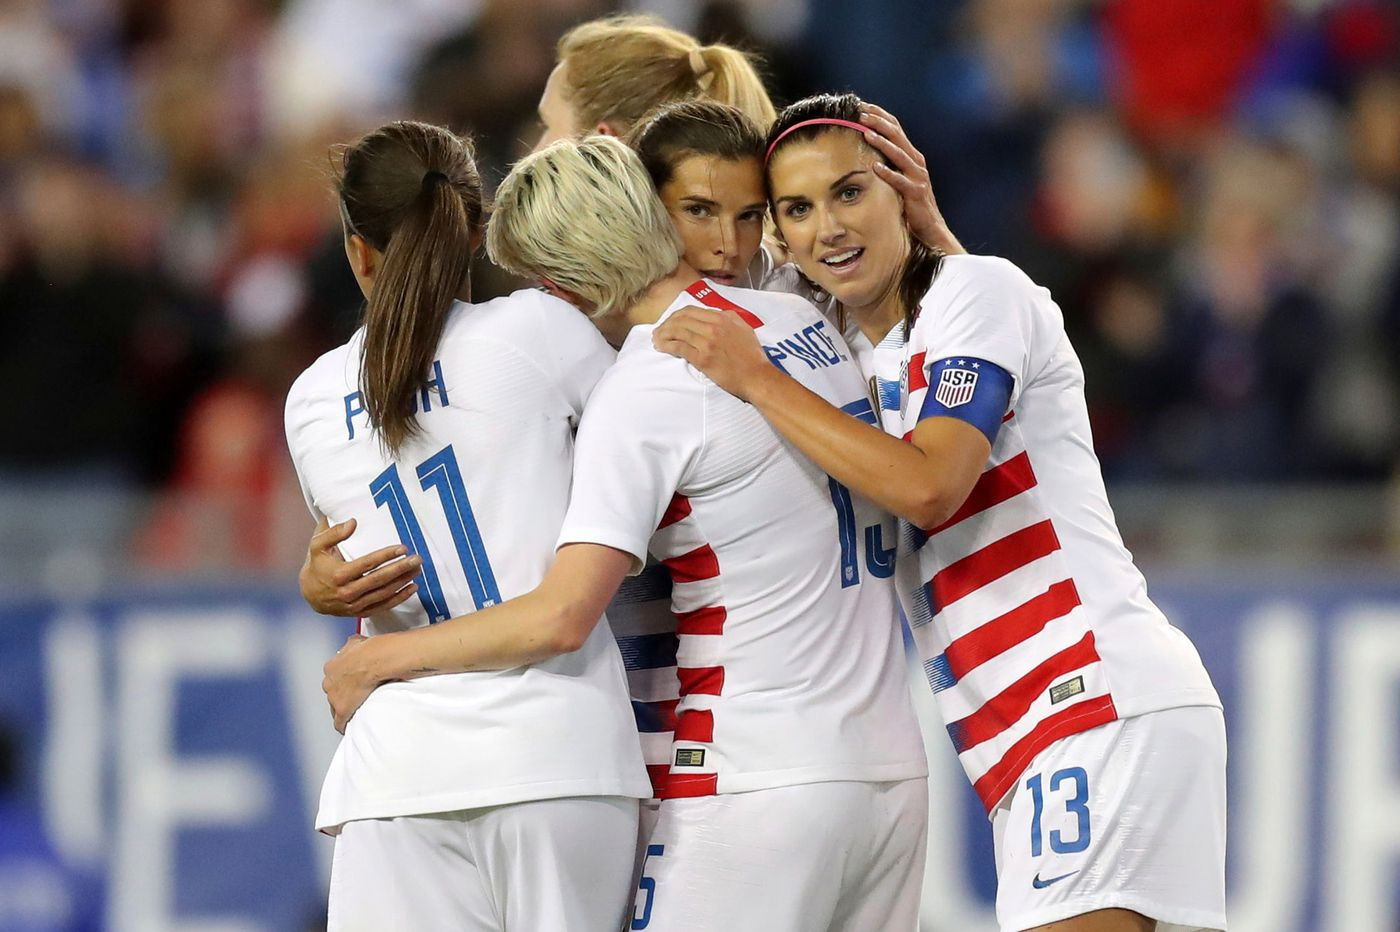 U.S. women's soccer players get sponsor money to fix World Cup bonus pay gap